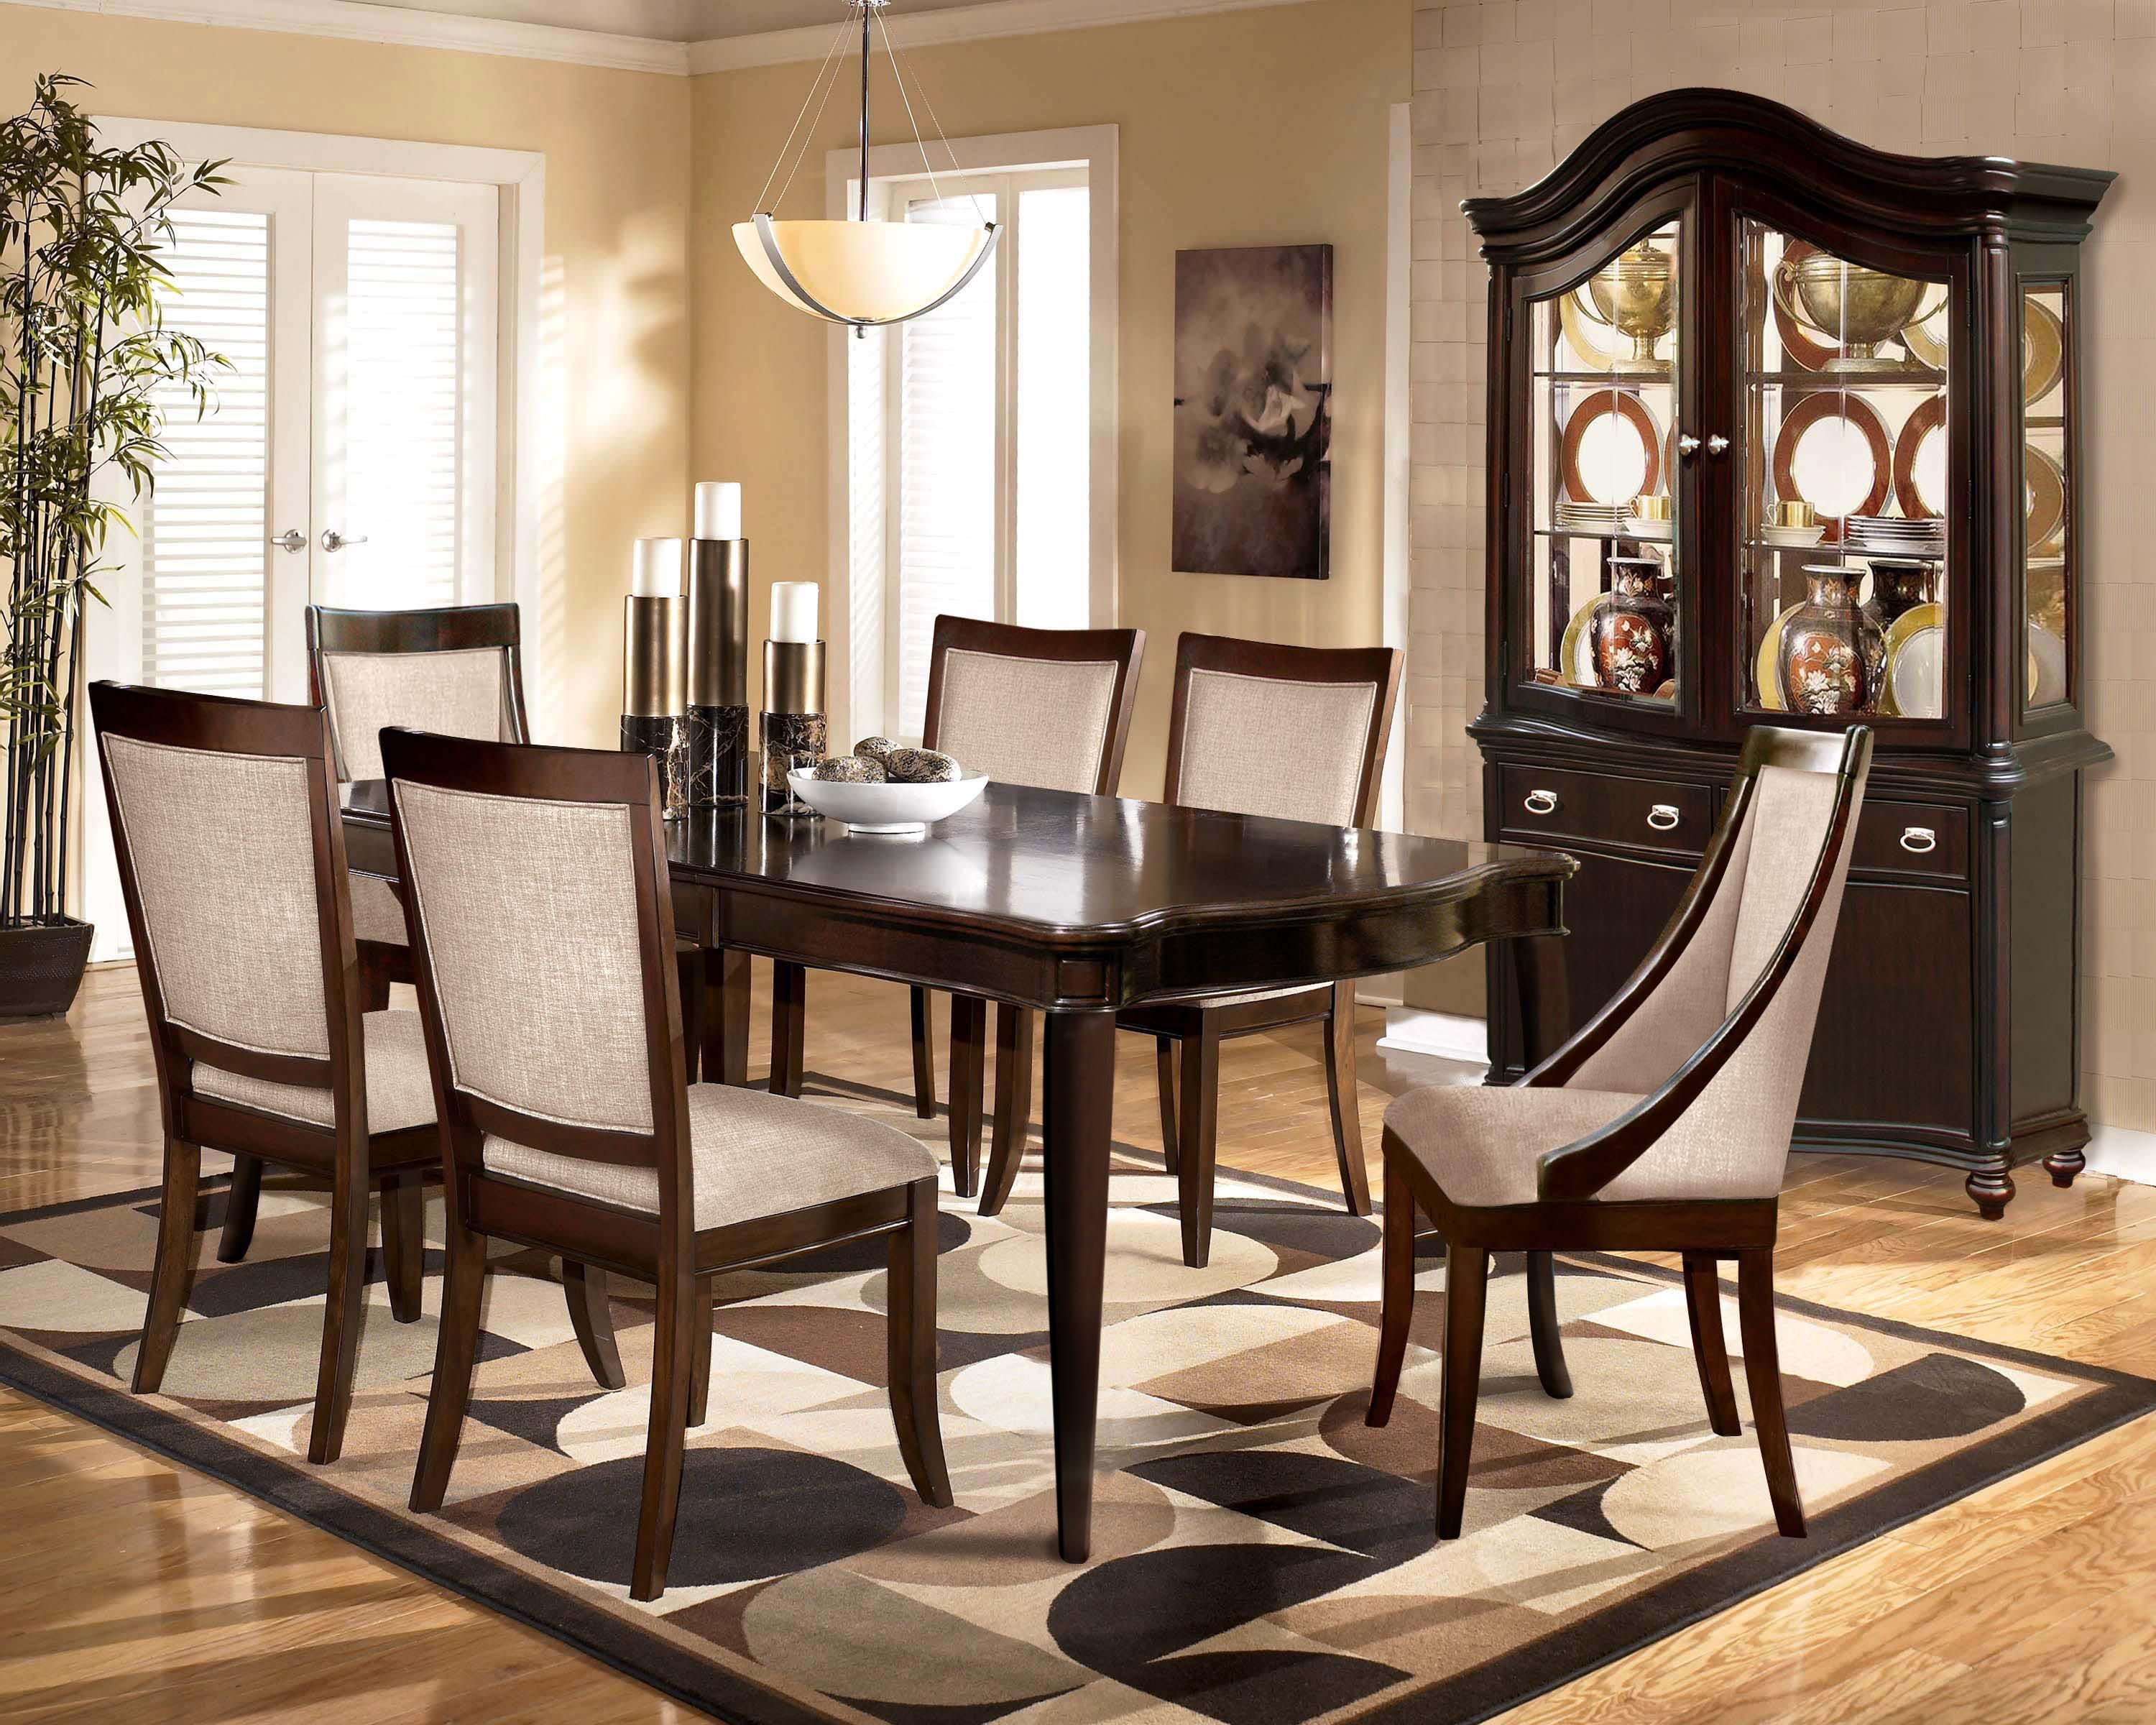 Pin On Dining Room Furniture Designs